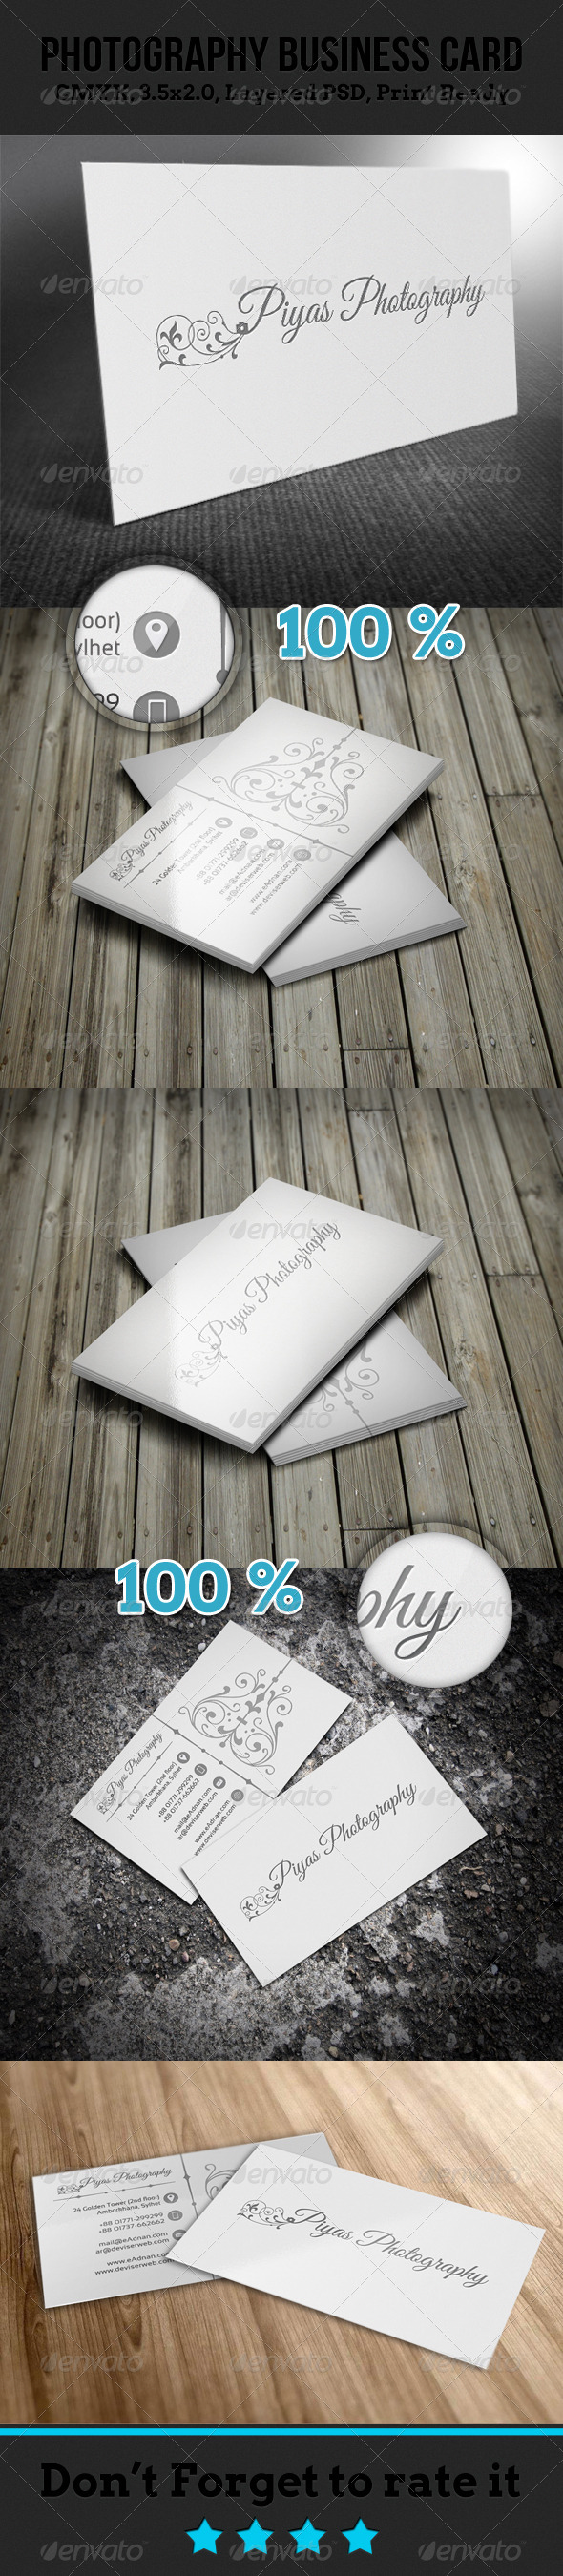 GraphicRiver Photography Business Card 4669855